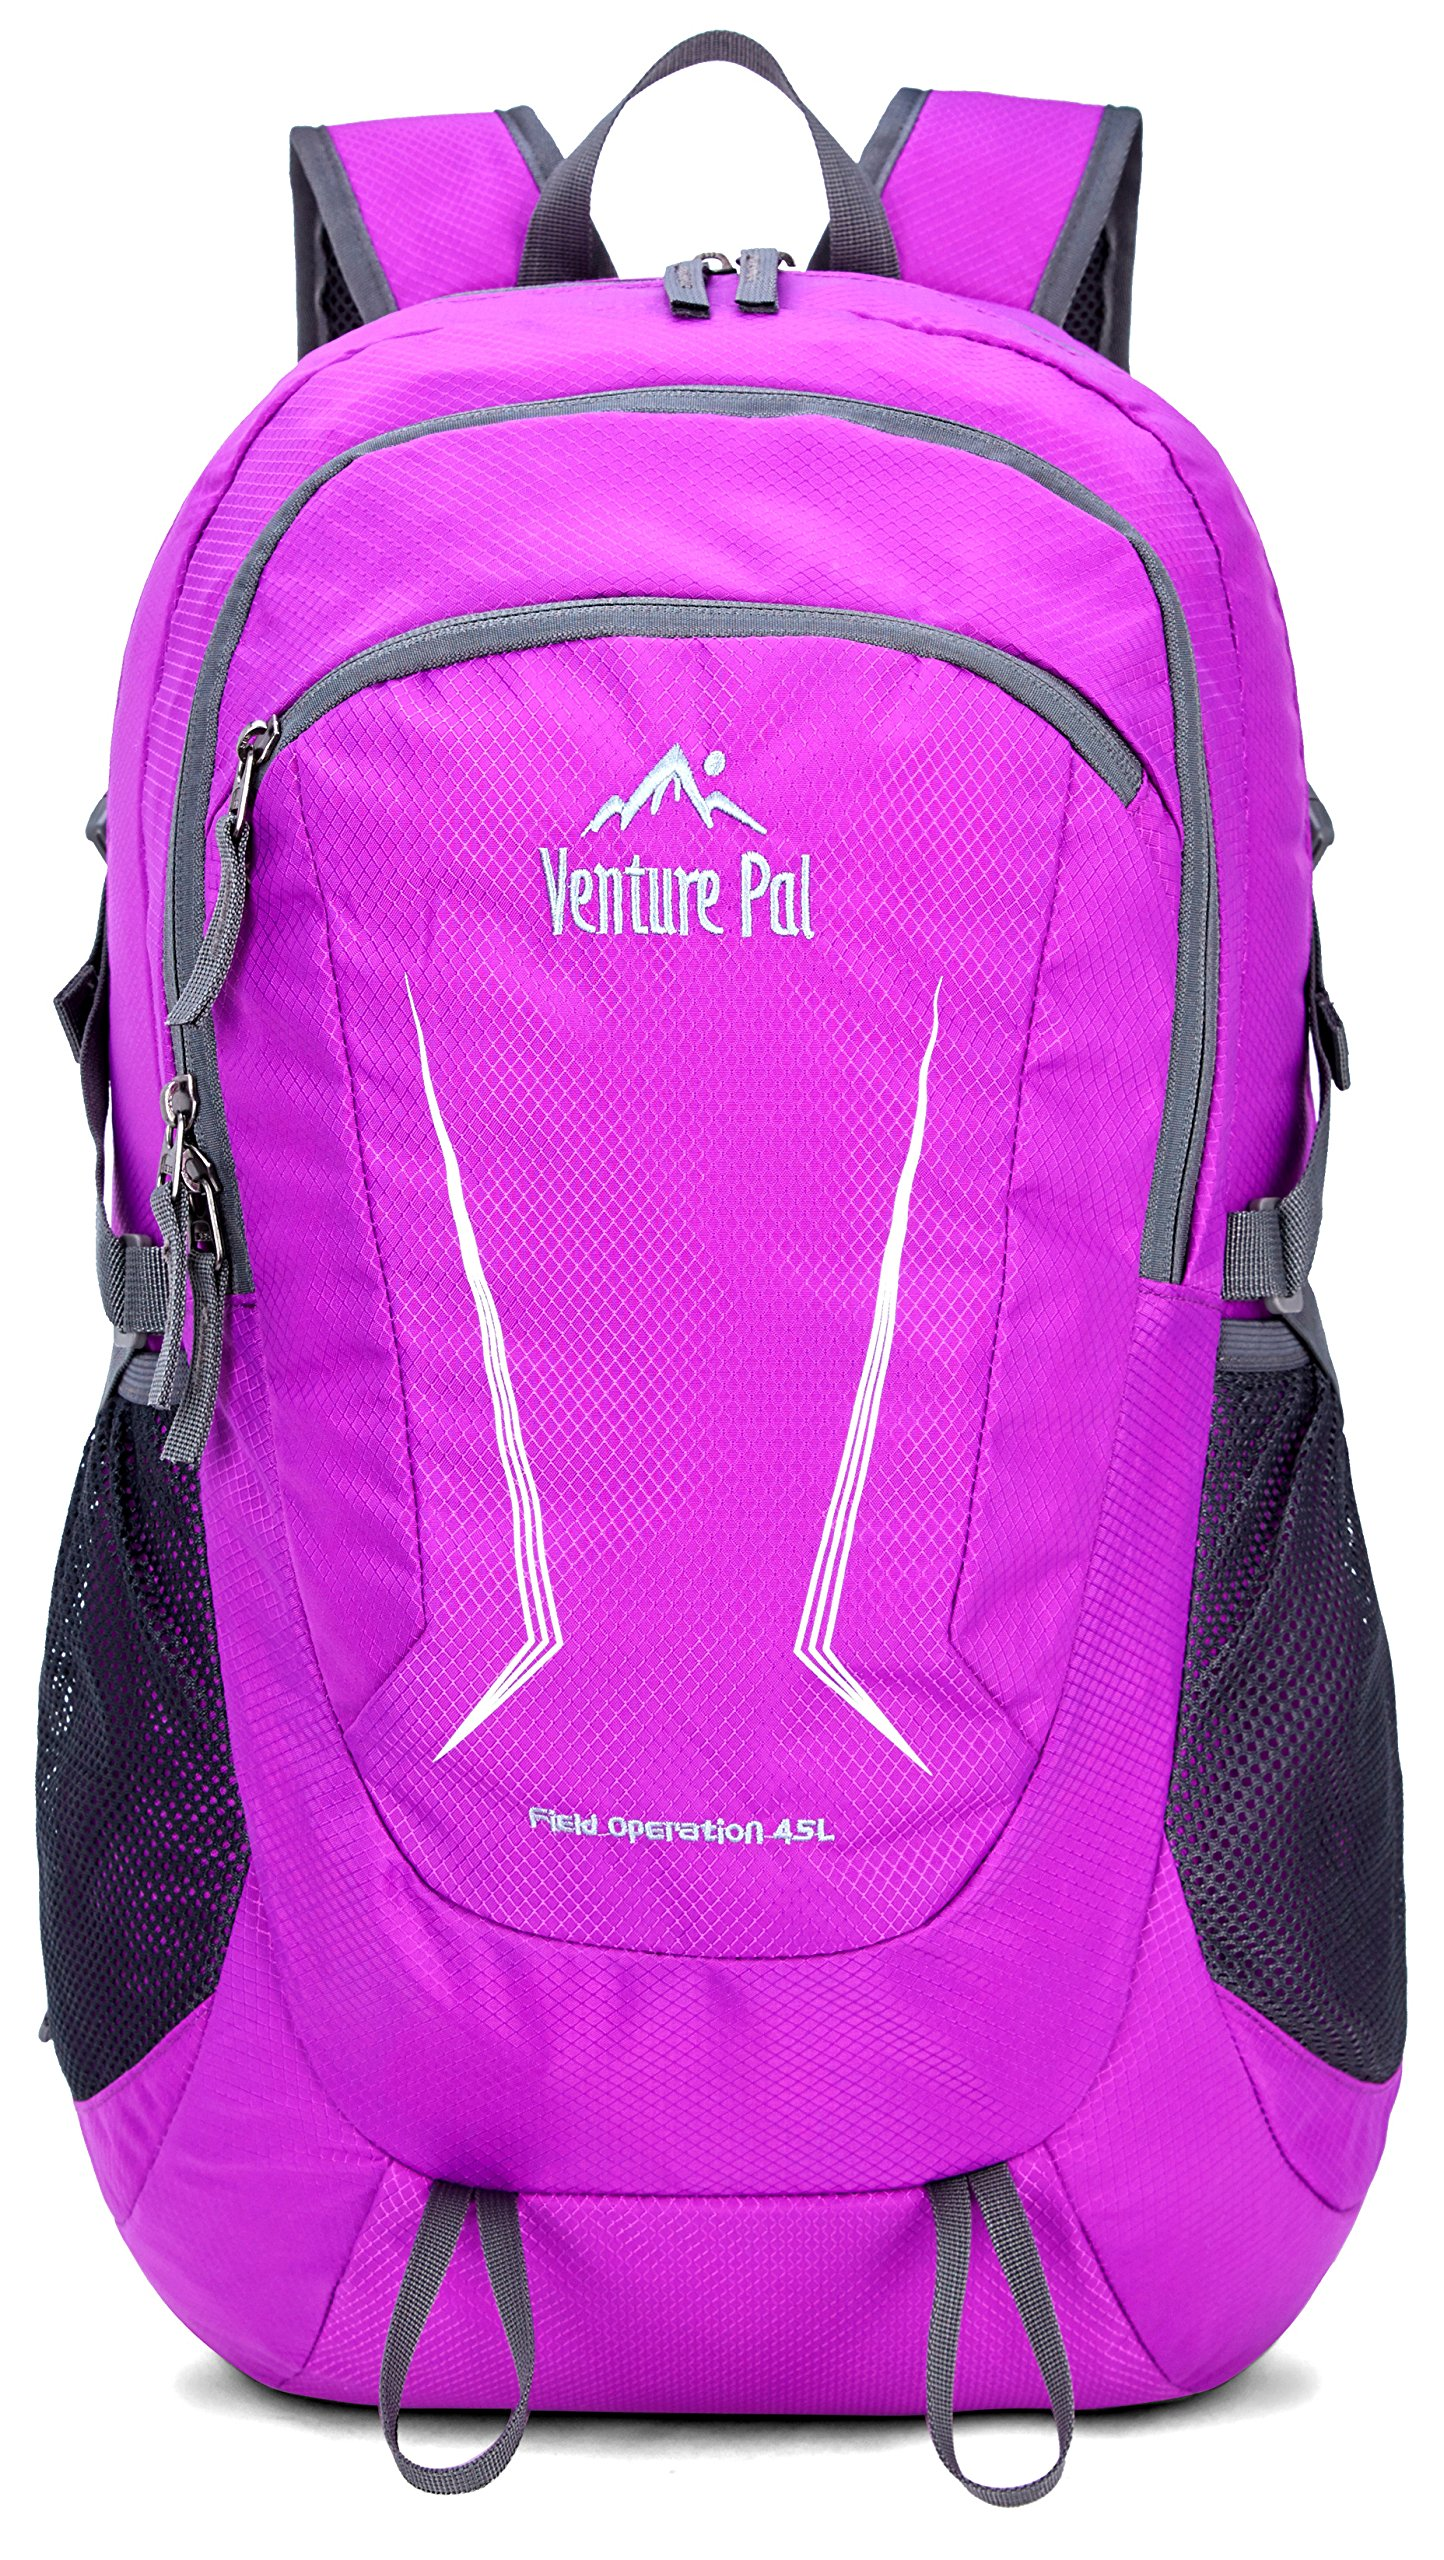 Venture Pal Large 45L Hiking Backpack - Packable Lightweight Travel Backpack Daypack for Women Men (Purple)